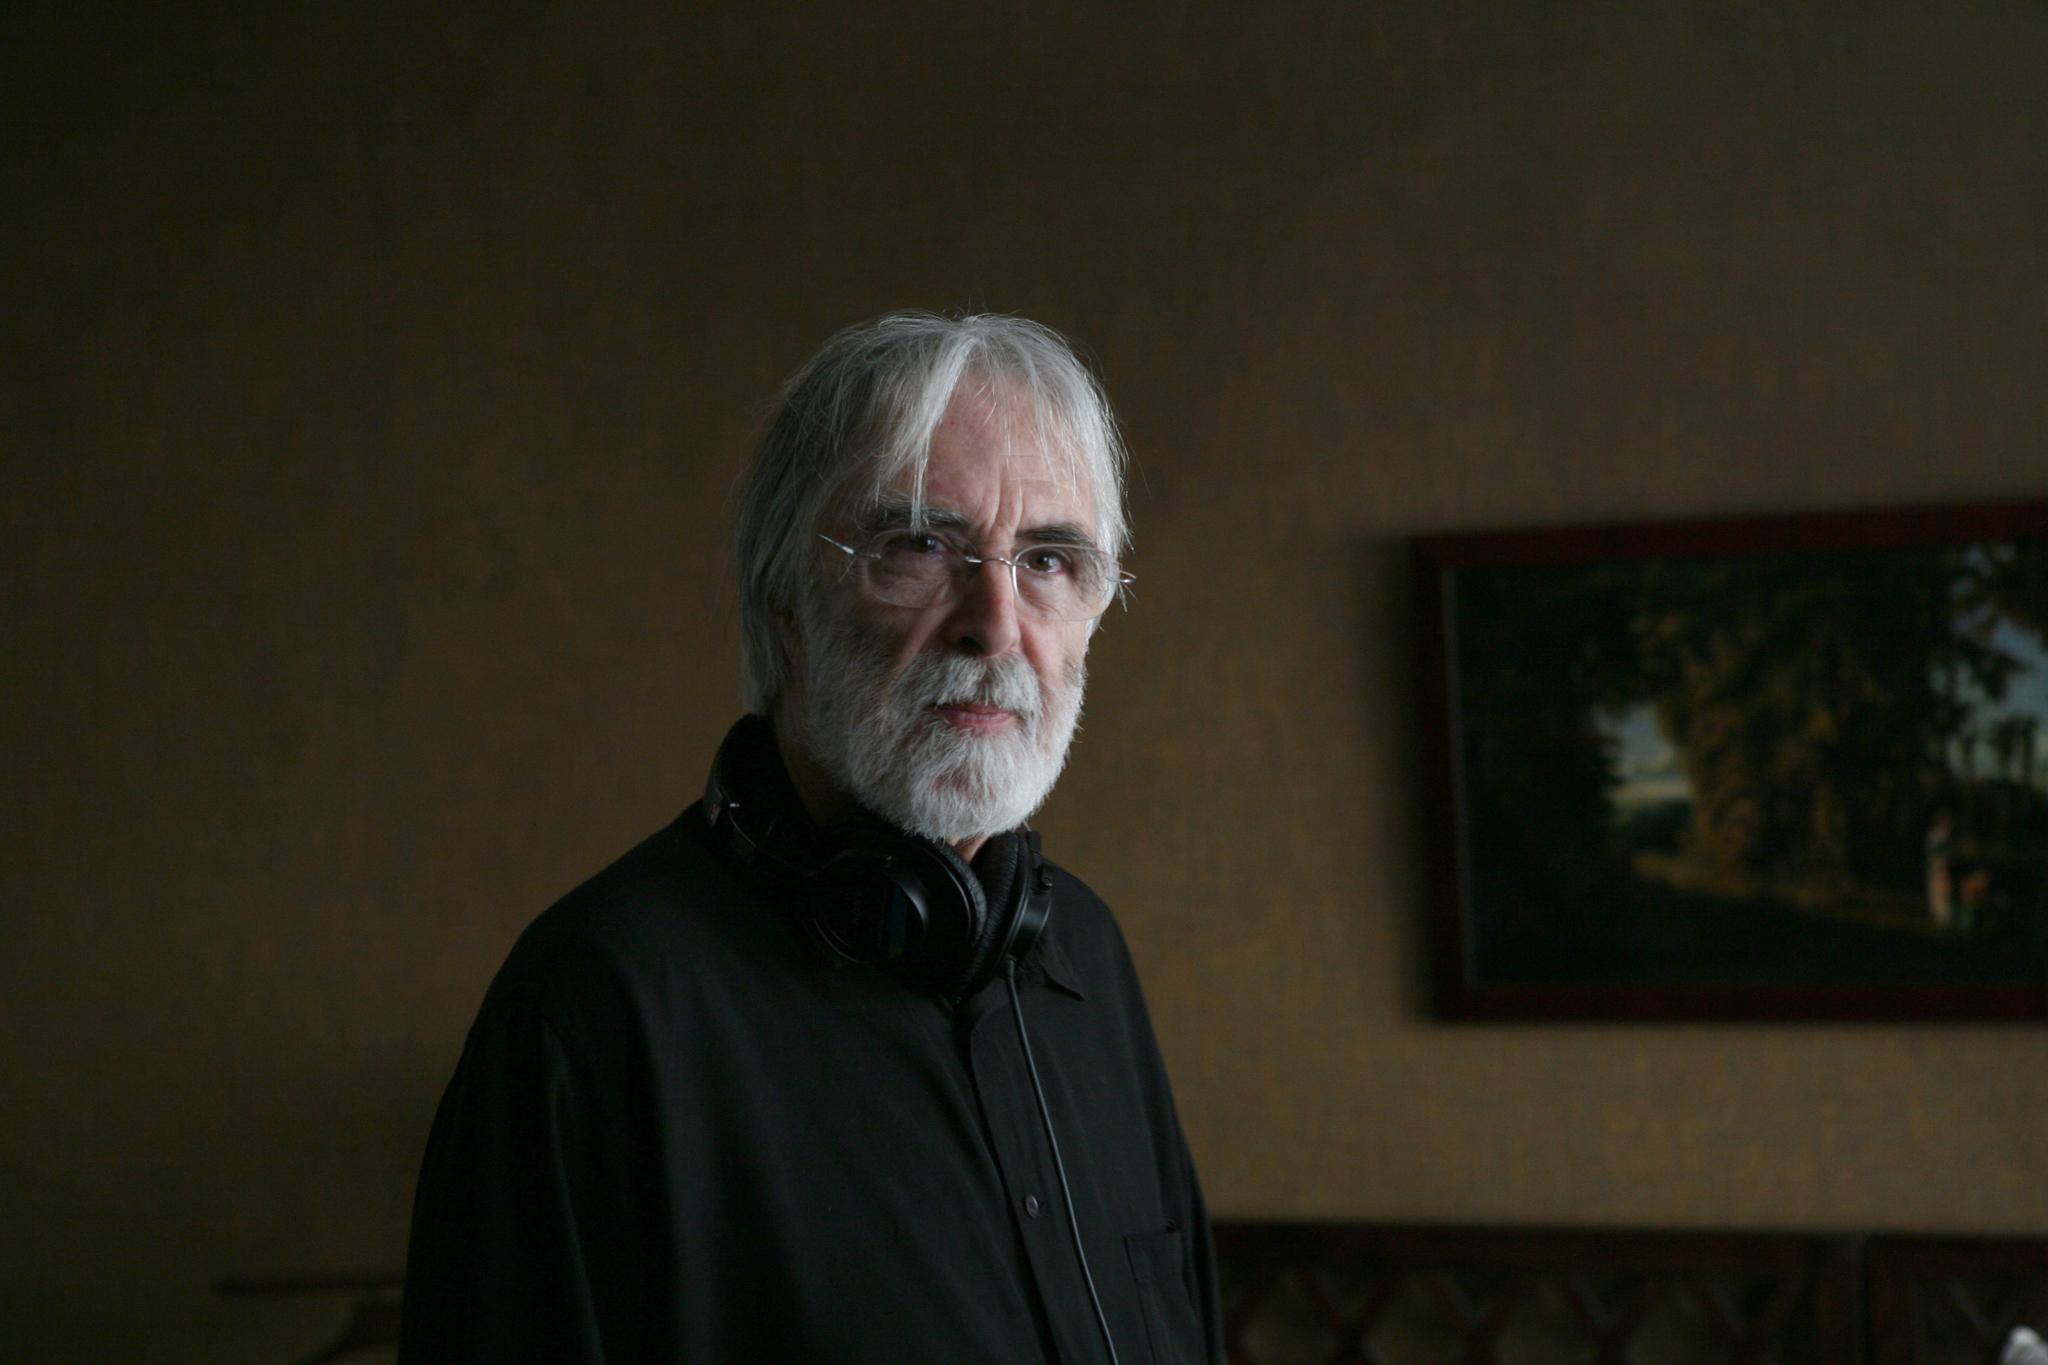 michael haneke as an auteur Michael haneke's hidden is a masterpiece of urban dread paul arthur places it within the context of the director's oeuvre and our own contemporary malaise paul arthur places it within the context of the director's oeuvre and our own contemporary malaise.